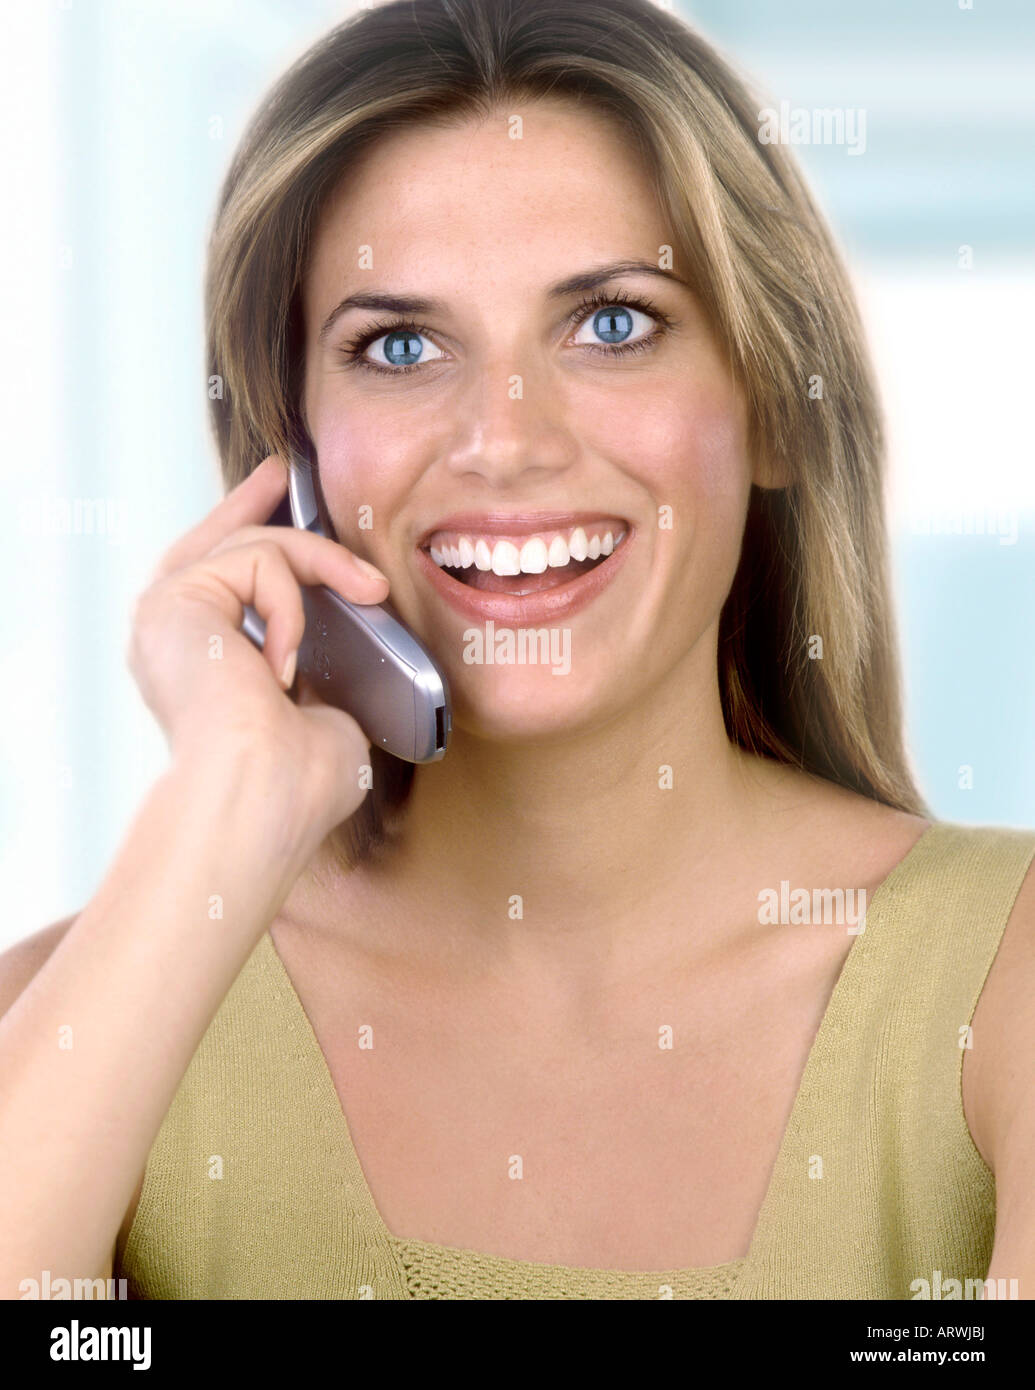 Smiling woman talking on cell phone - Stock Image